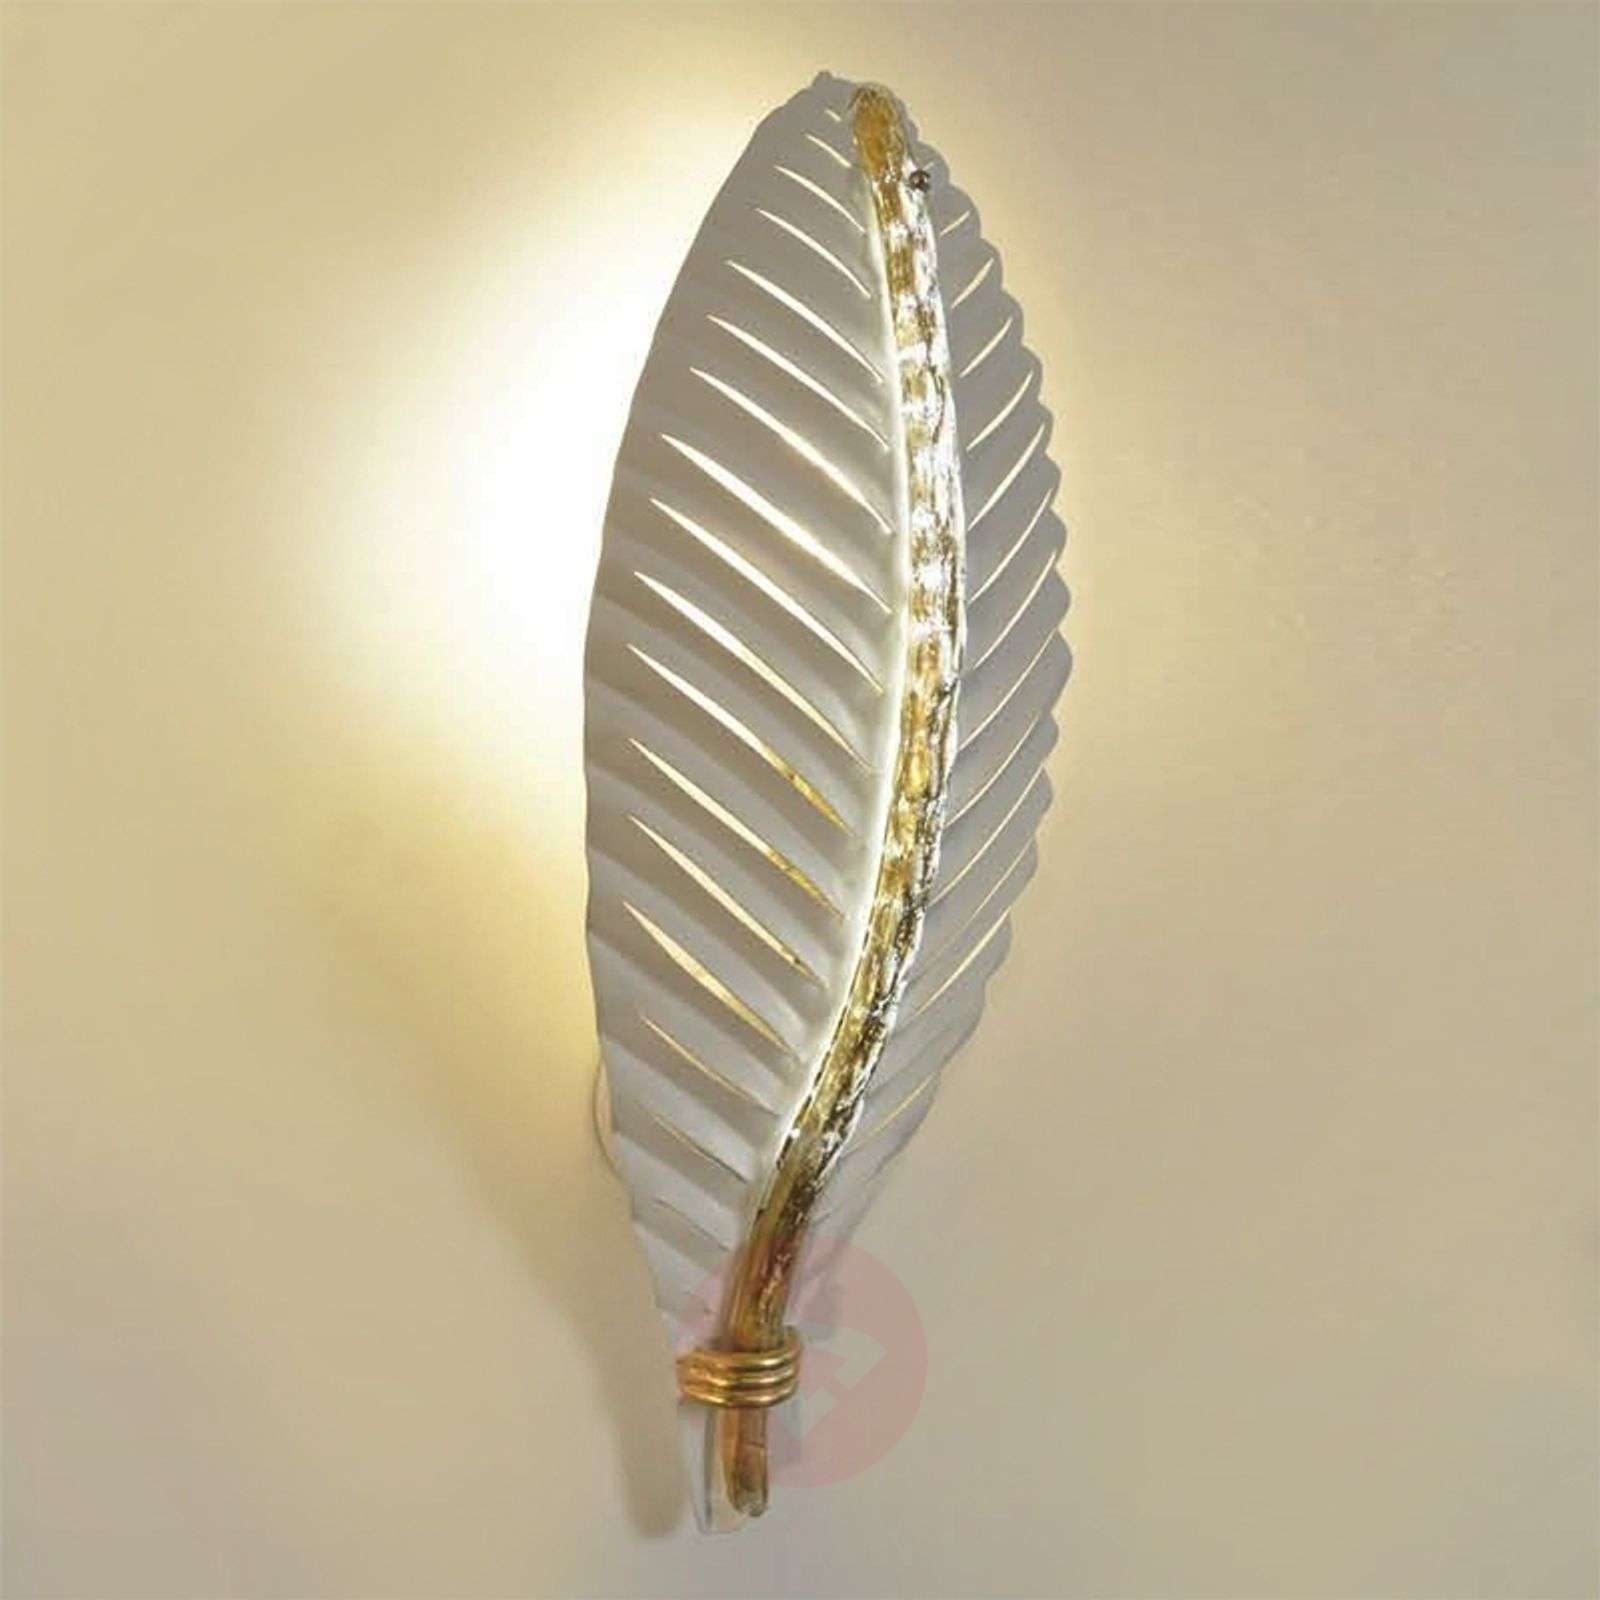 Leaf-shaped wall light Oasi Lights.co.uk